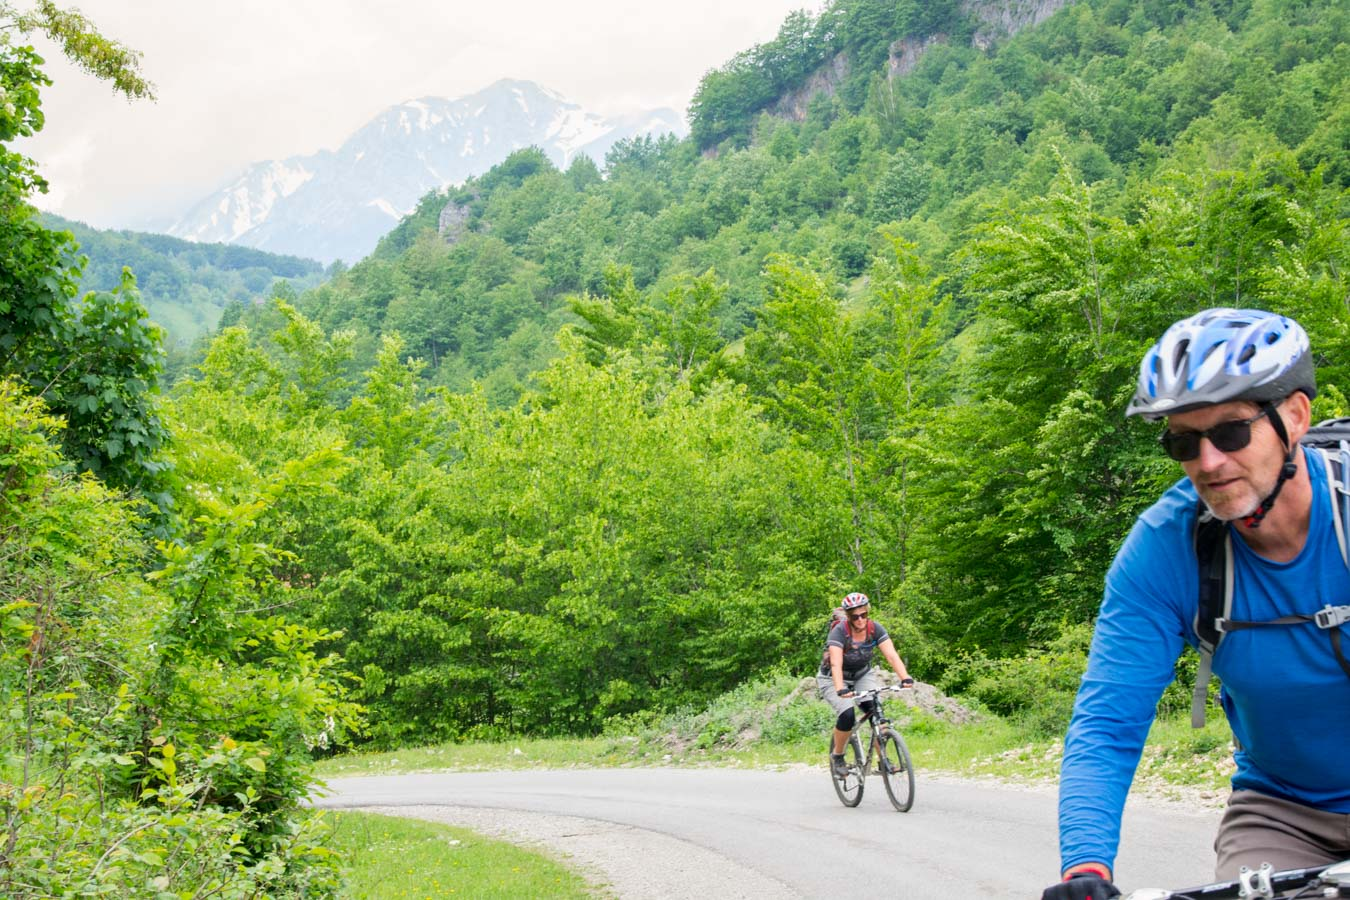 MTB Advventure cycle touring Montenegro - Andrijevica